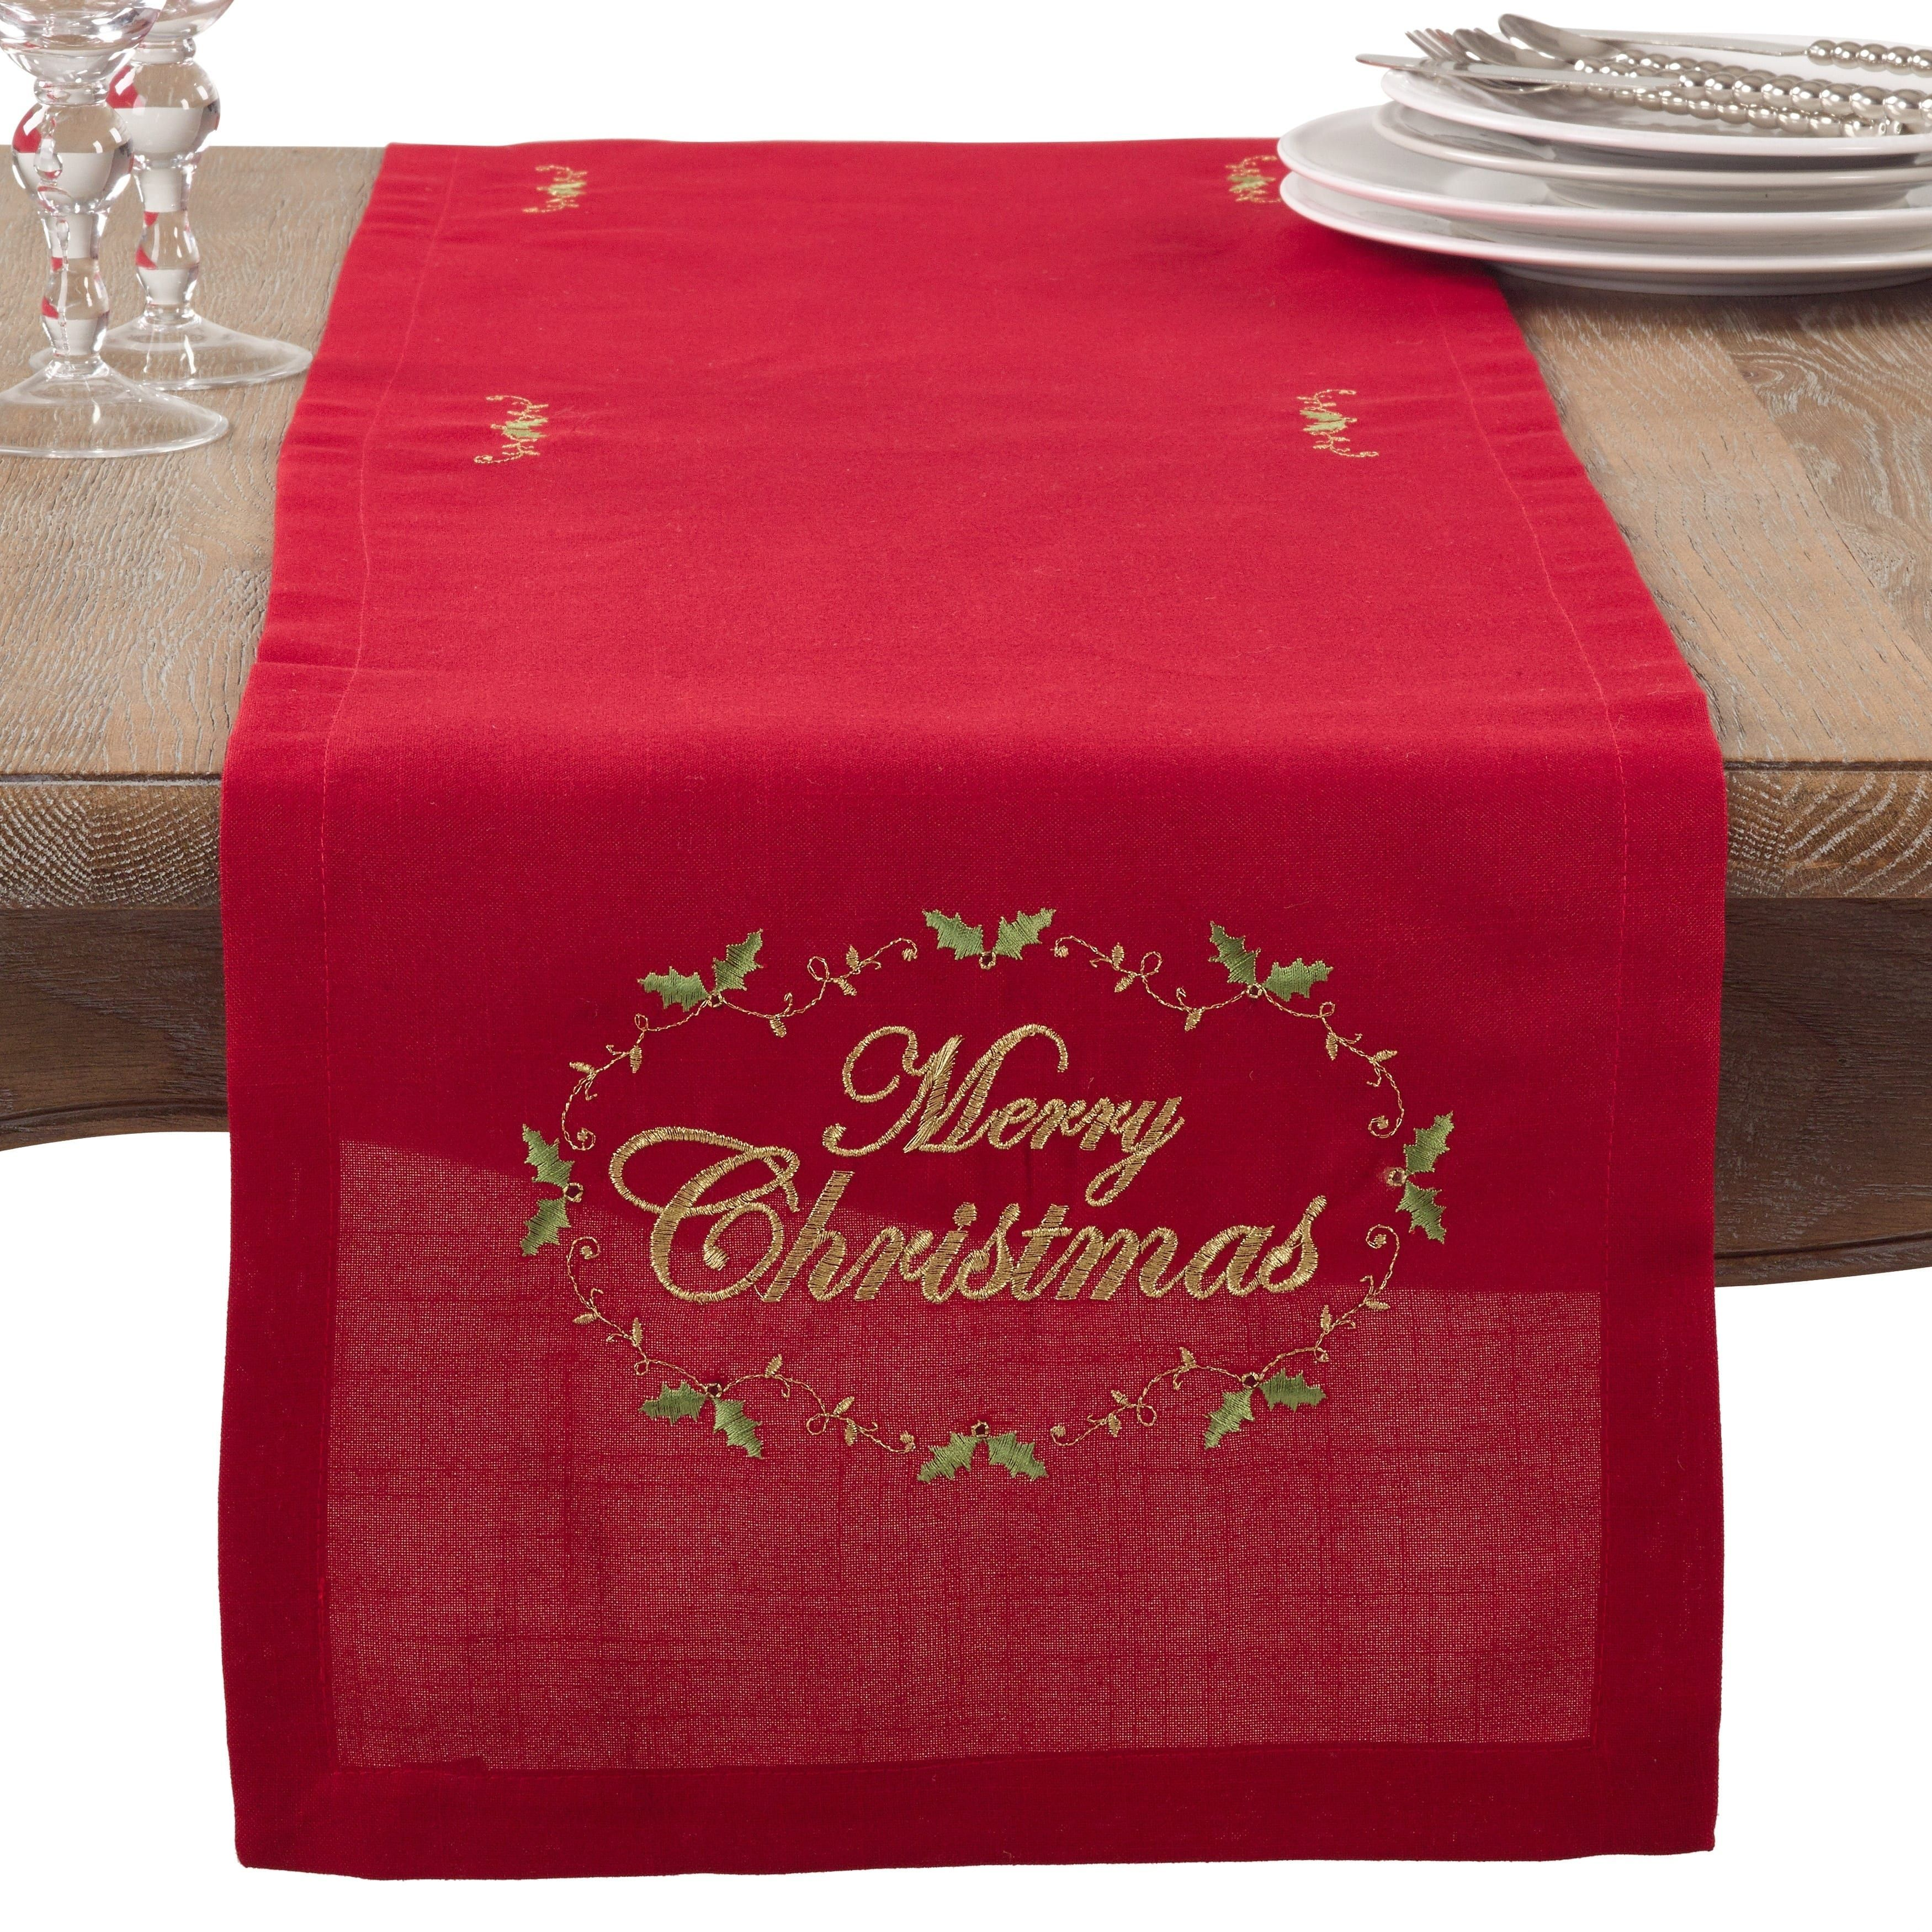 Saro Merry Christmas Embroidered Holiday Table Runner (Runner/90 Inch Runner),  Red (Polyester)